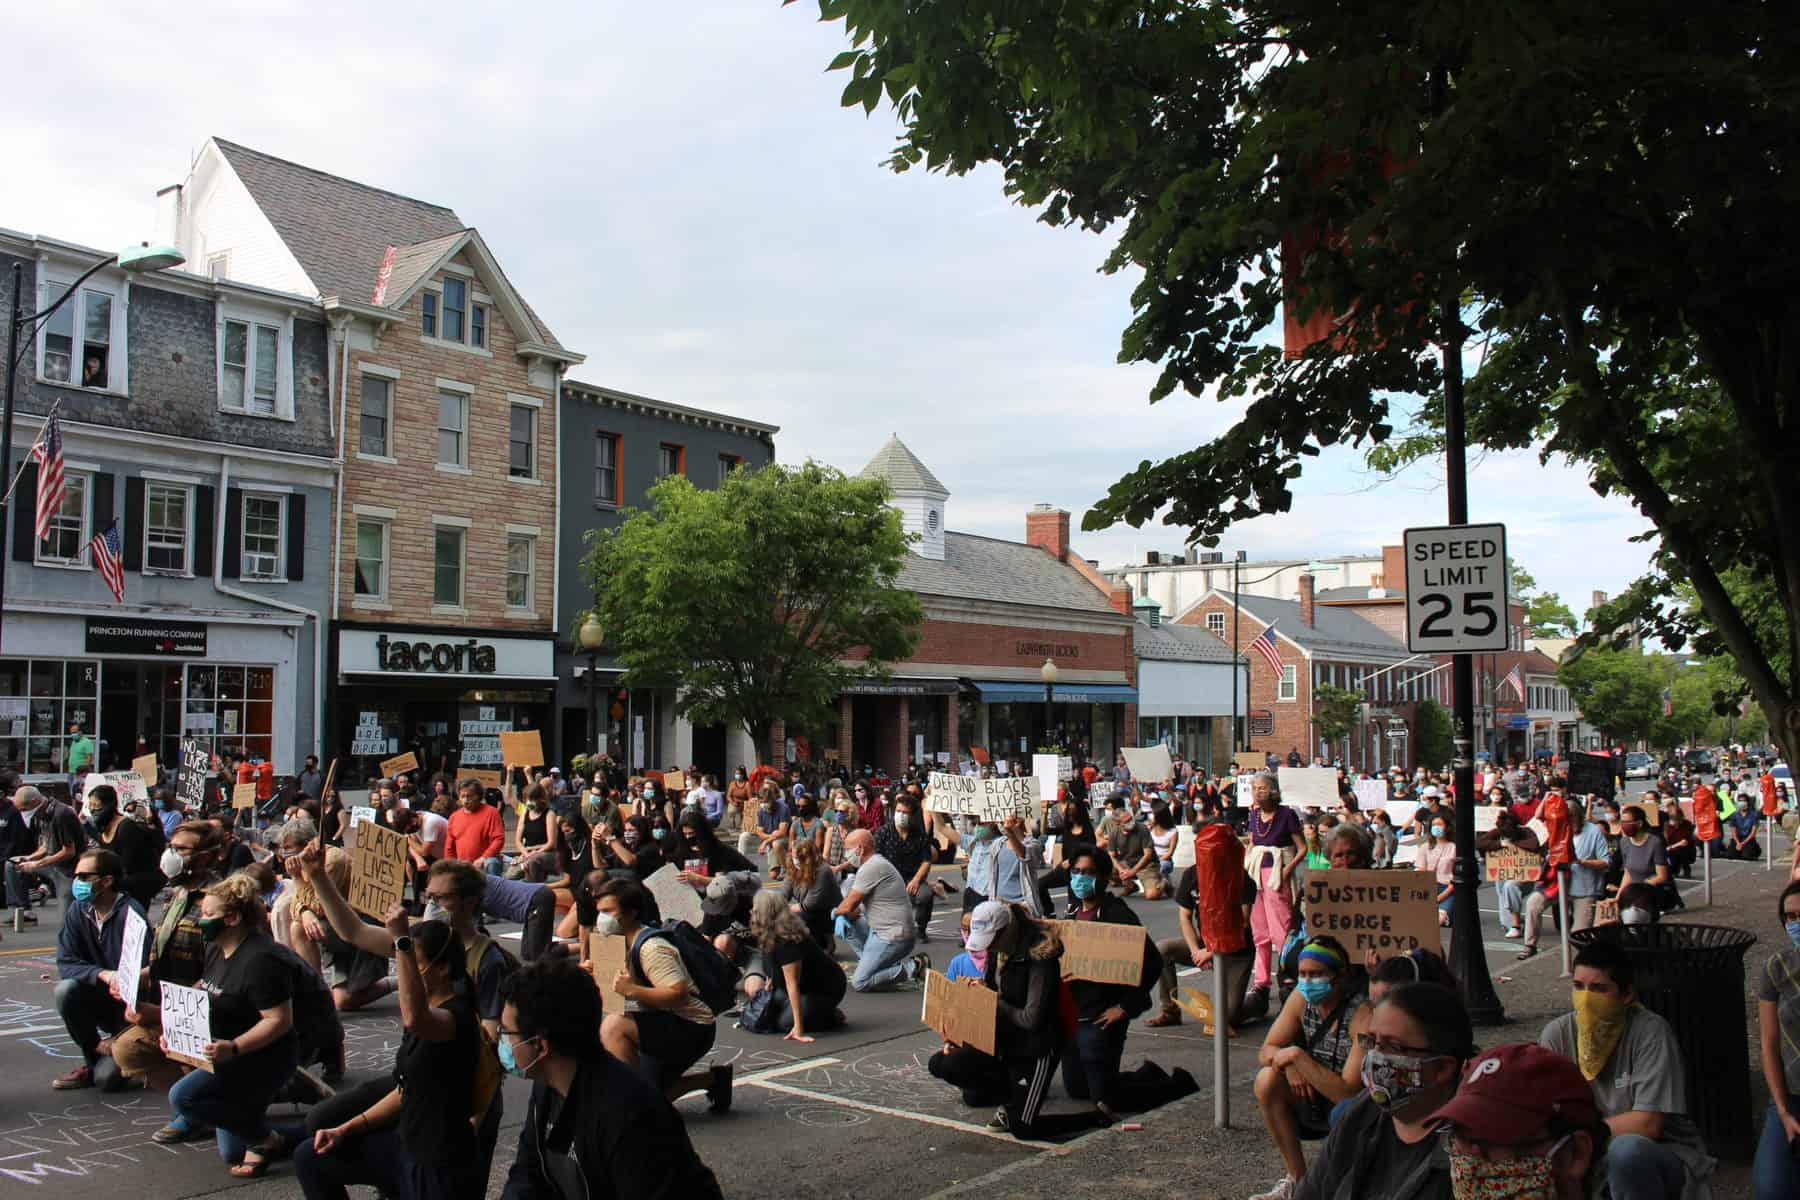 Hundreds of Princeton students and community members kneeling on Nassau Street during a protest against racial injustice in 2020.